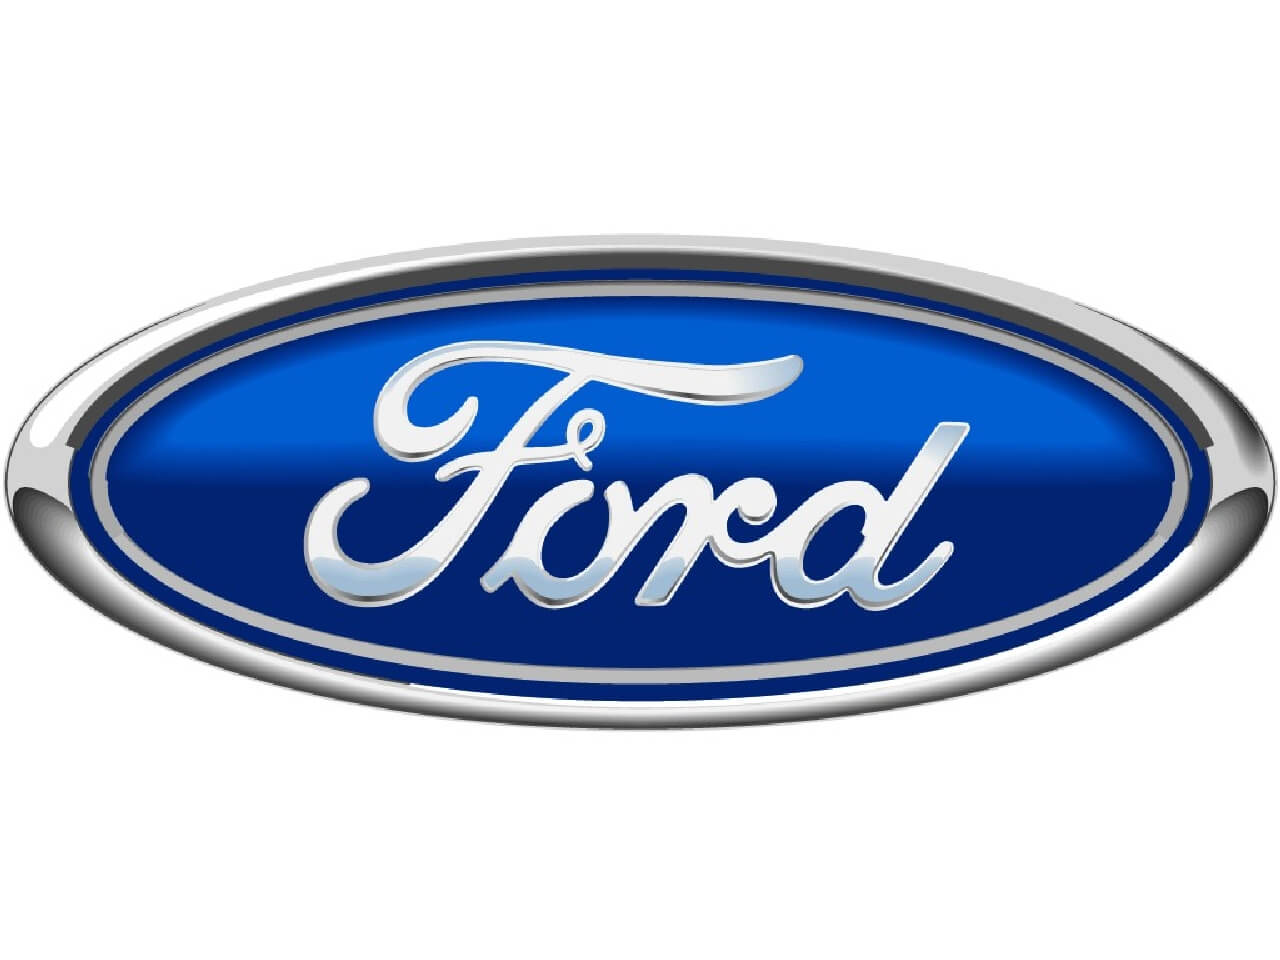 My ford online login